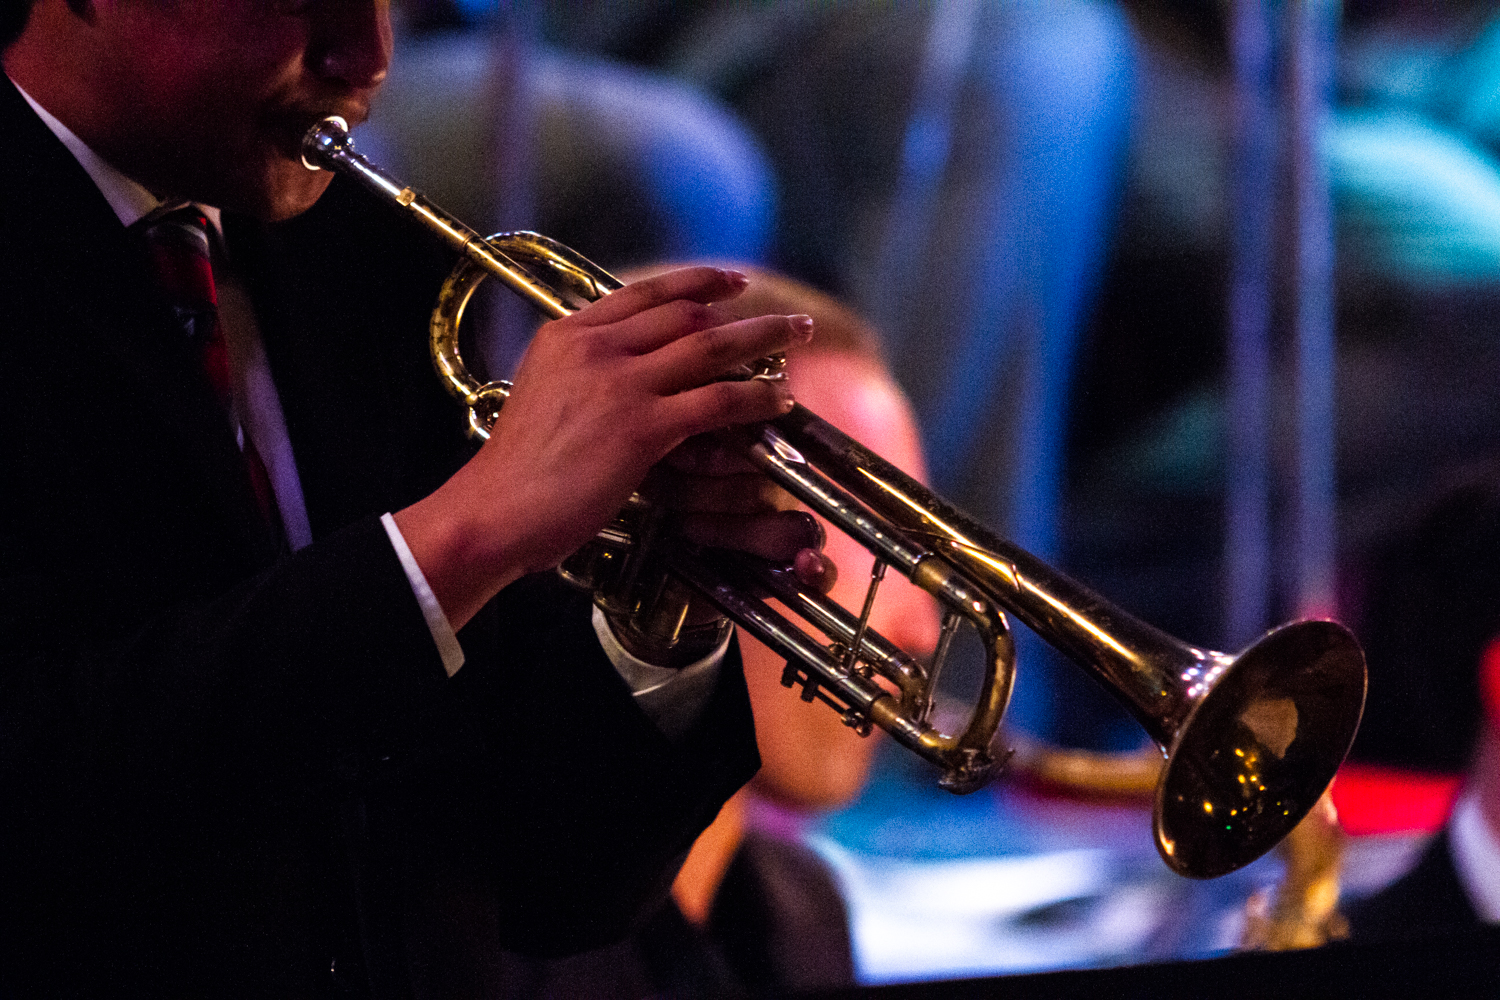 "City College's Lunchbreak Jazz Band performs on Monday, March 18, 2019, at the Soho Restaurant & Music Club in Santa Barbara, Calif. The band performed five pieces, ""Blue Daniel"", ""You Go To My Head"", ""Mornin' Reverend"", ""La Fiesta"", and ""Who Me?""."